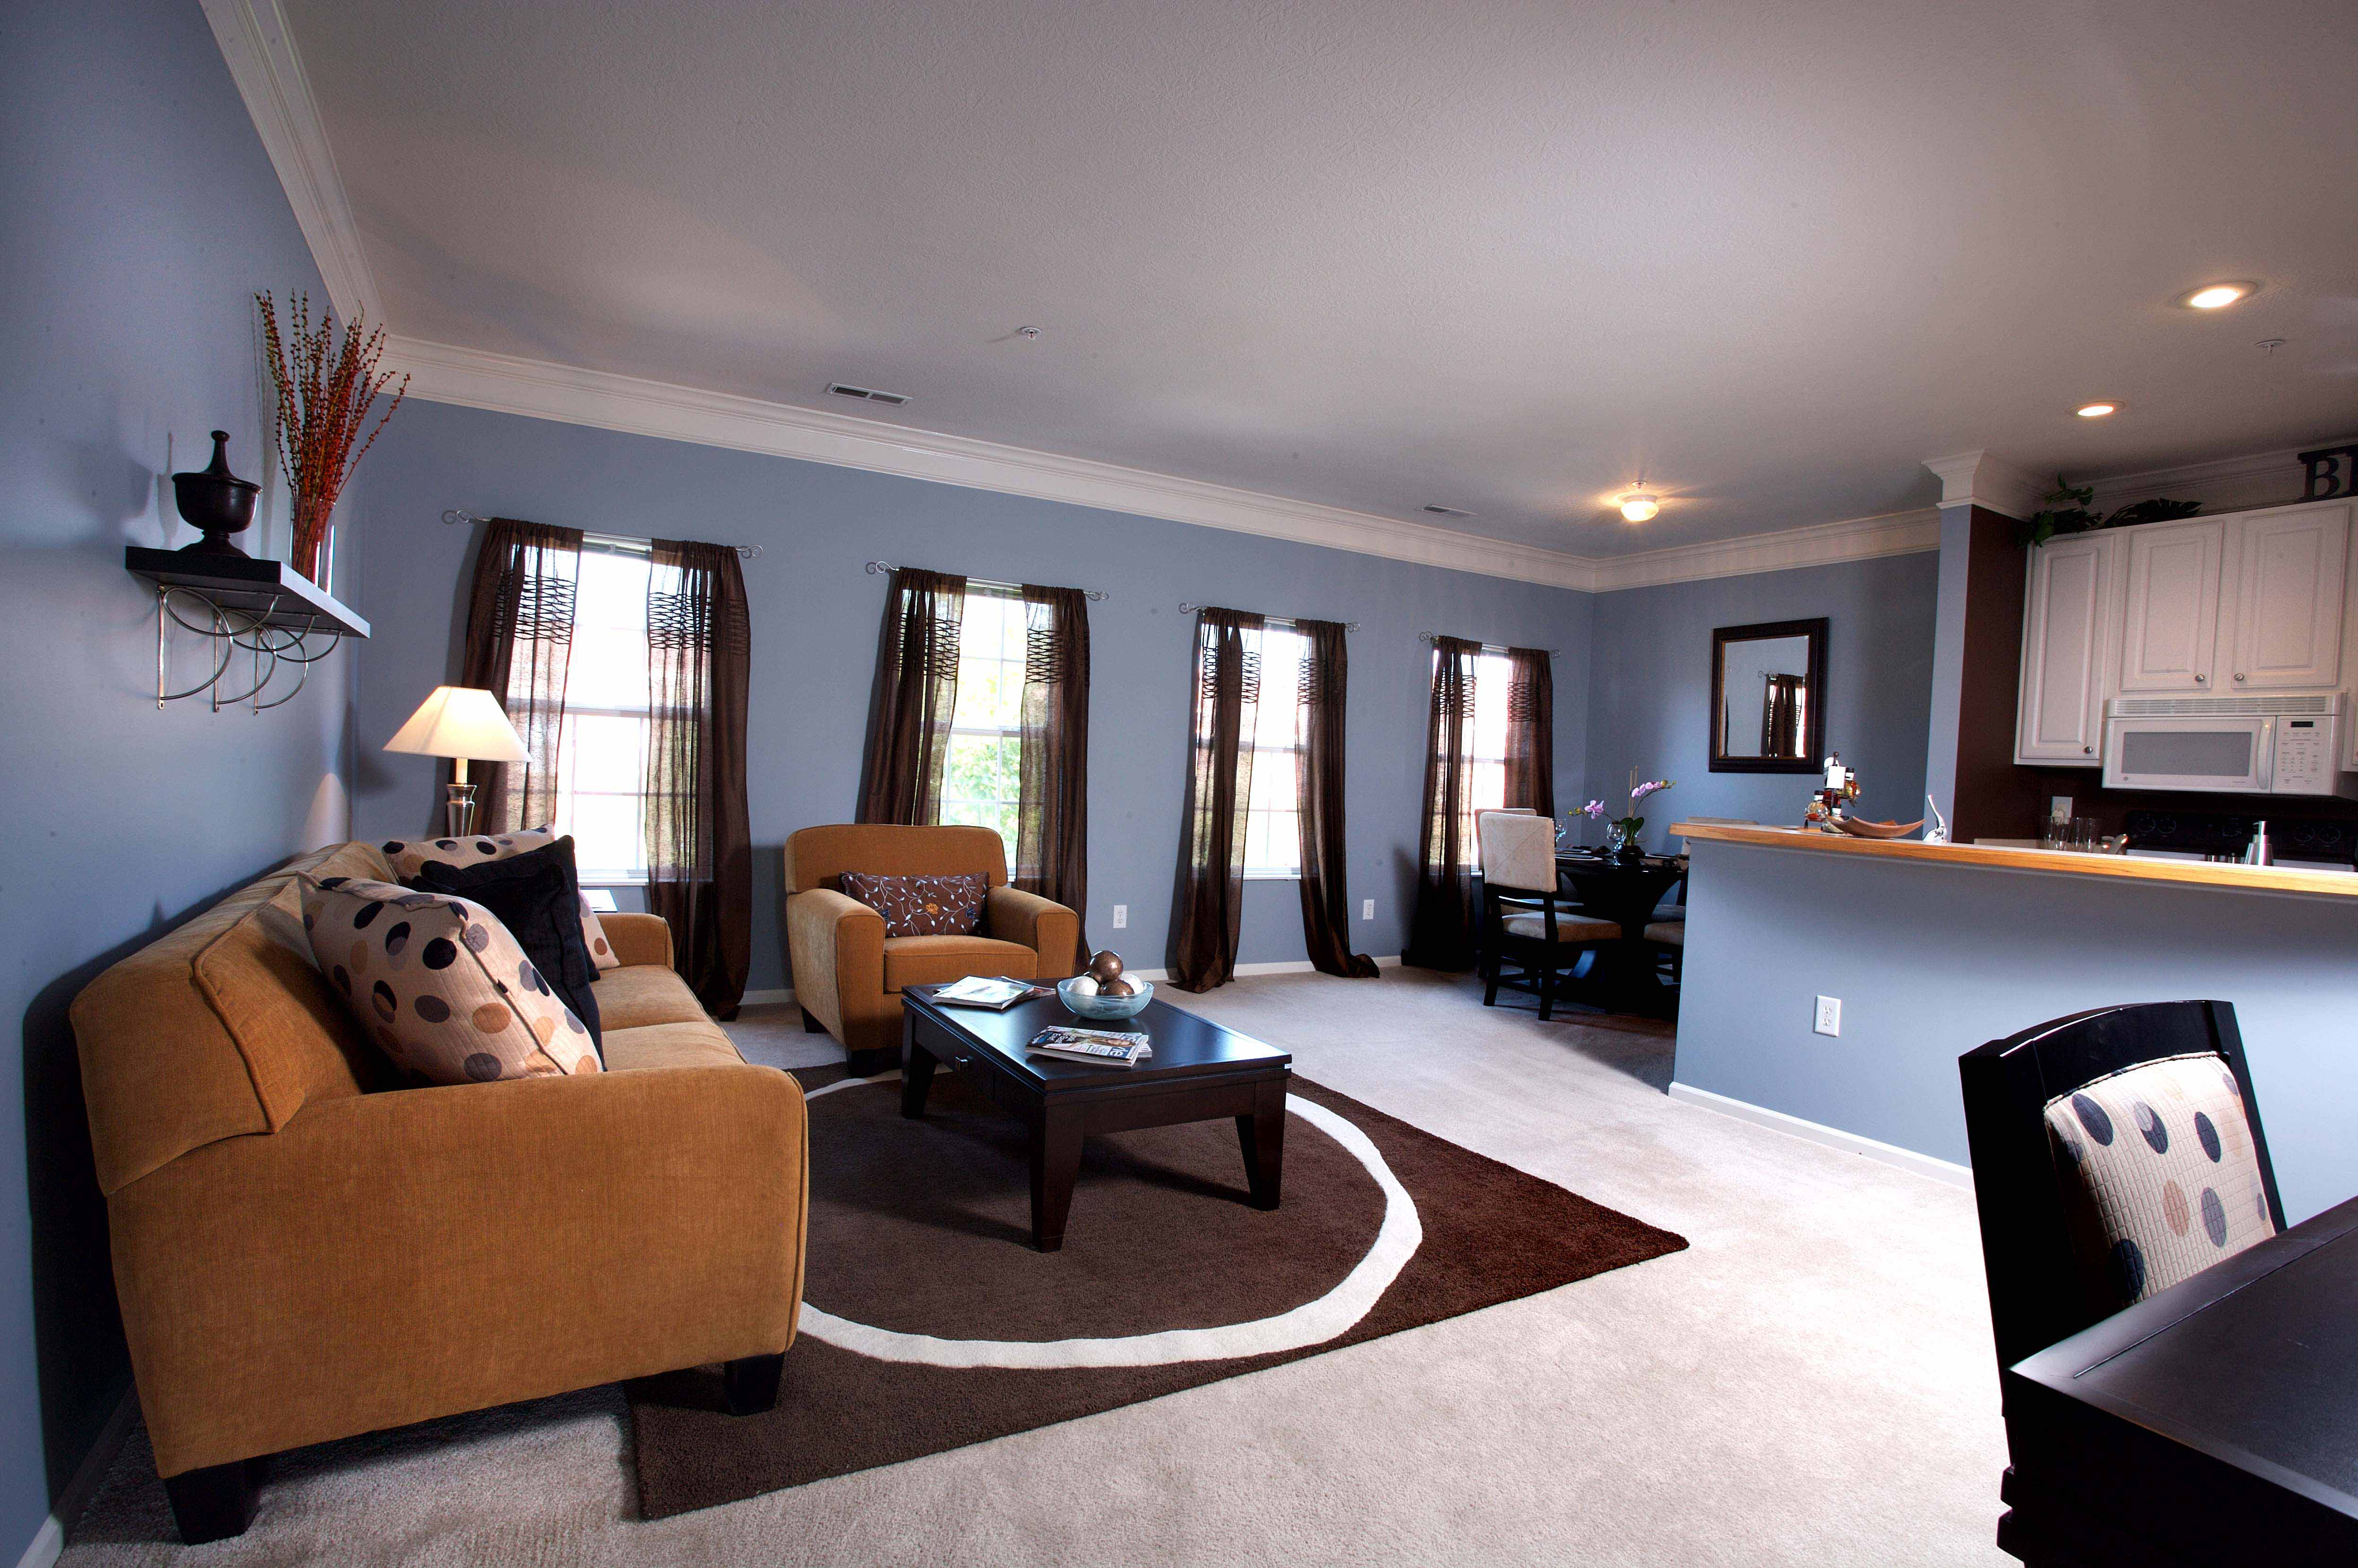 4011 Easton Way 500 : Off-Campus and Commuter Student Services